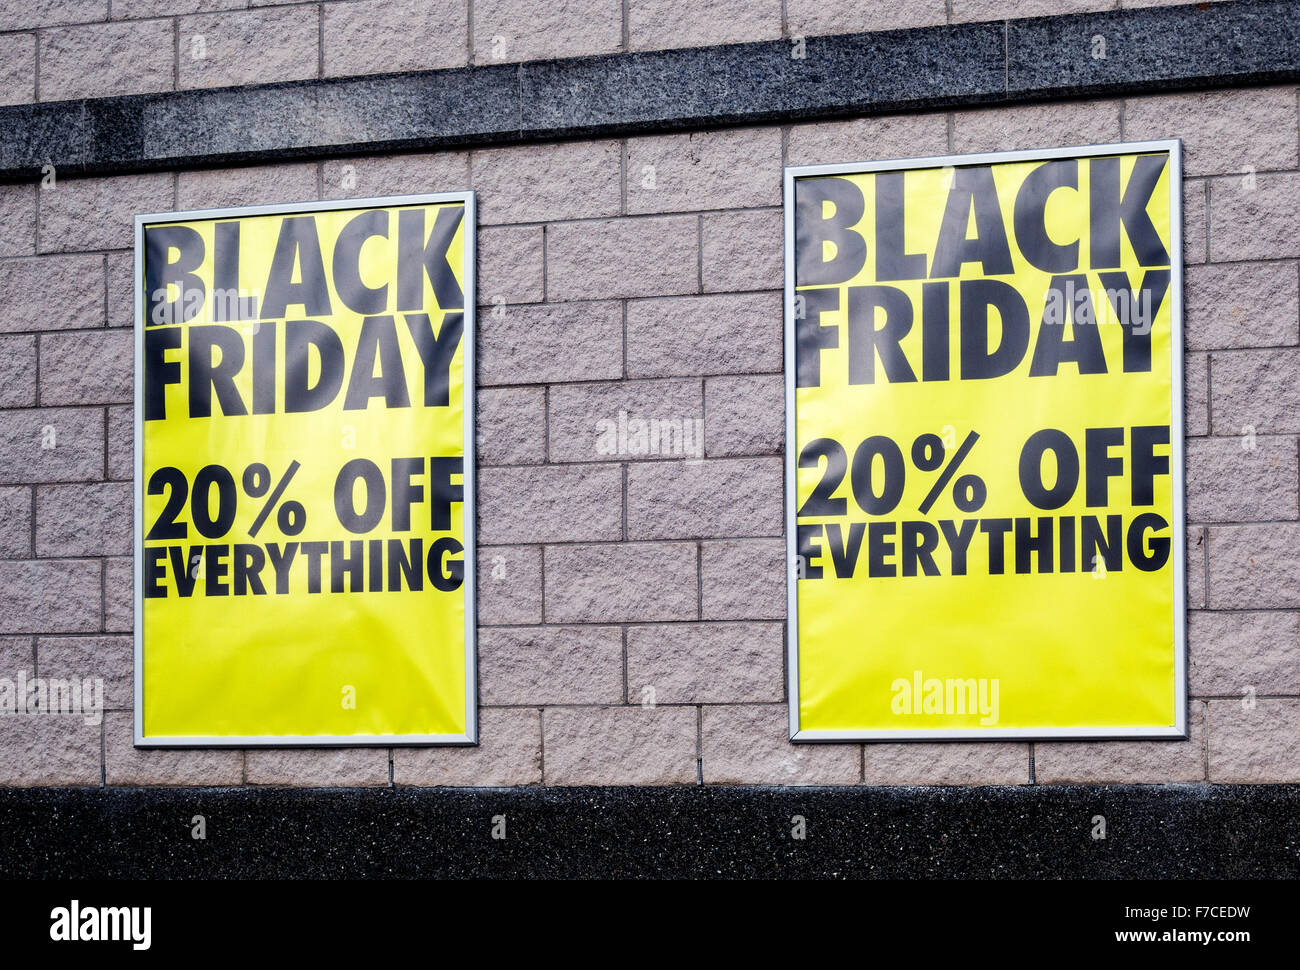 Black Friday advertising posters - Stock Image